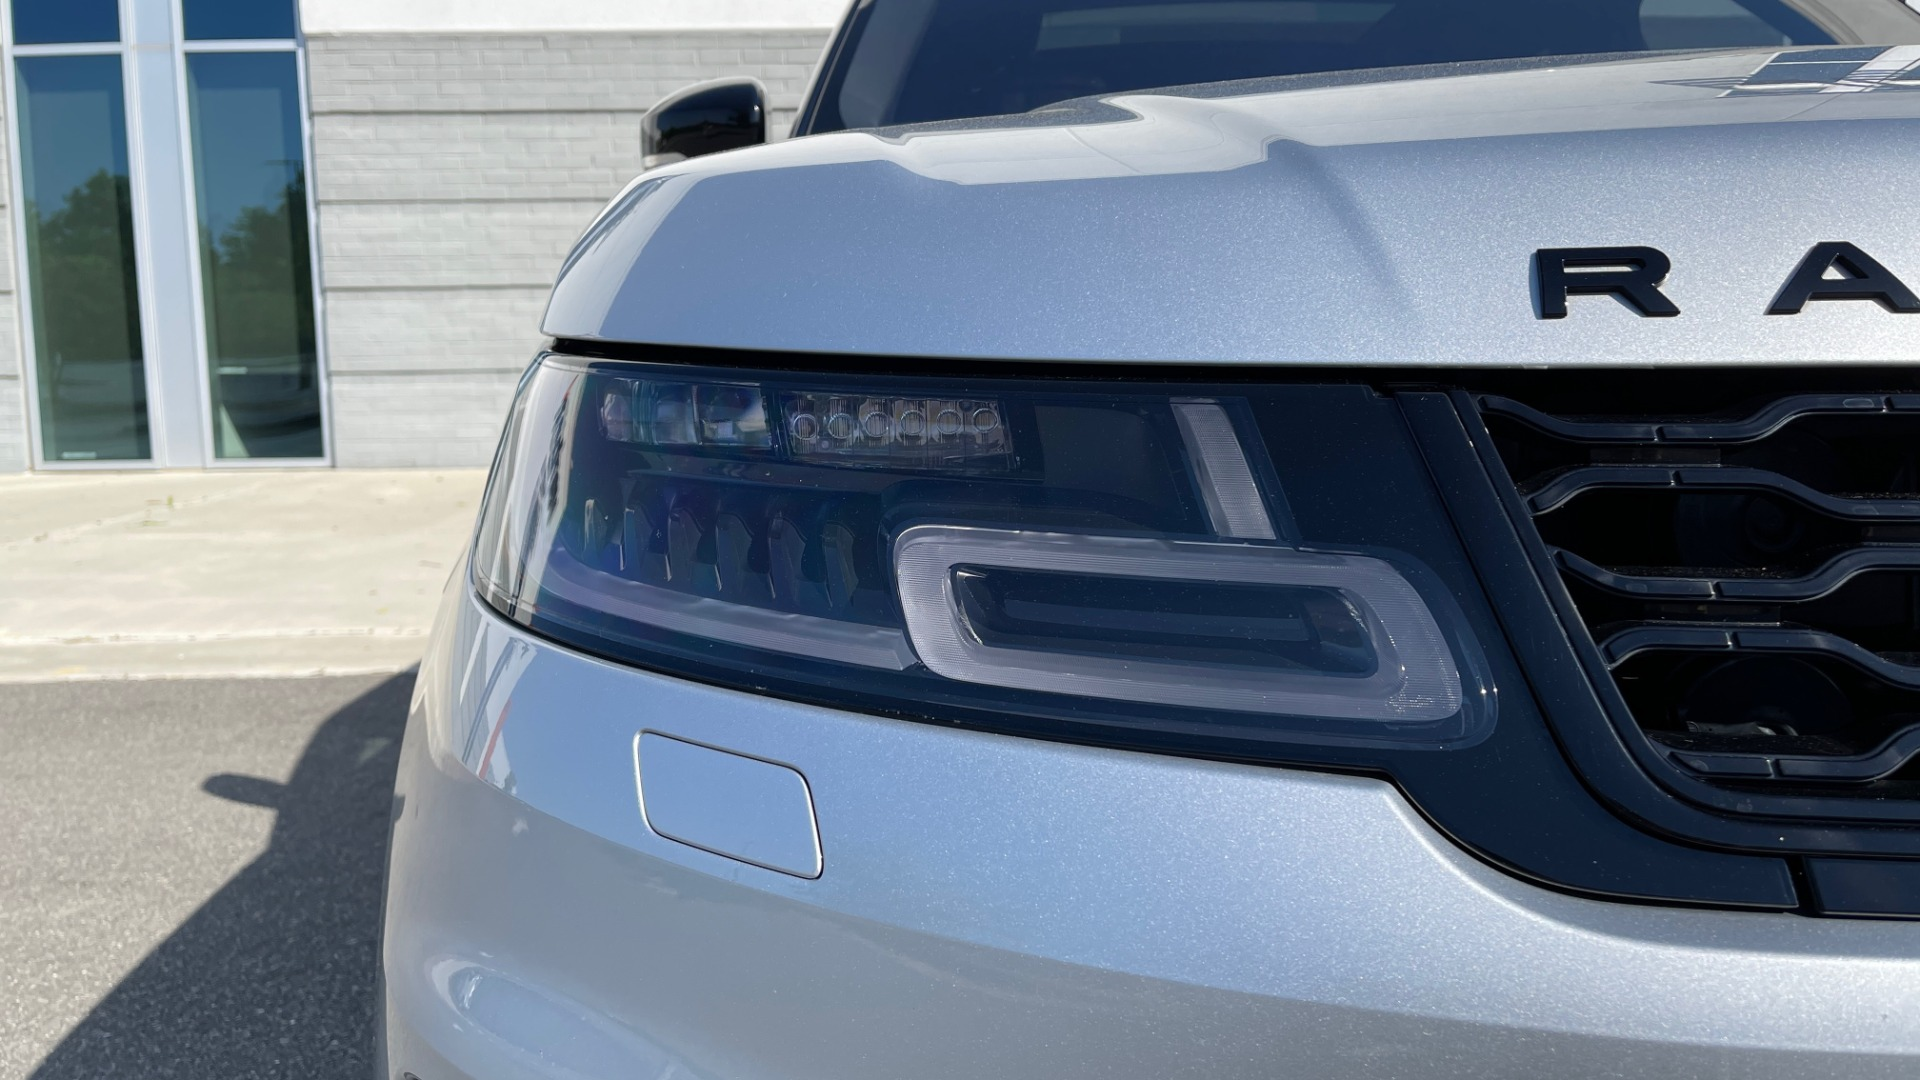 Used 2019 Land Rover RANGE ROVER SPORT HSE DYNAMIC / 3.0L SC V6 / 8-SPD / APPLE / NAV / SUNROOF / REARVIEW for sale Sold at Formula Imports in Charlotte NC 28227 10